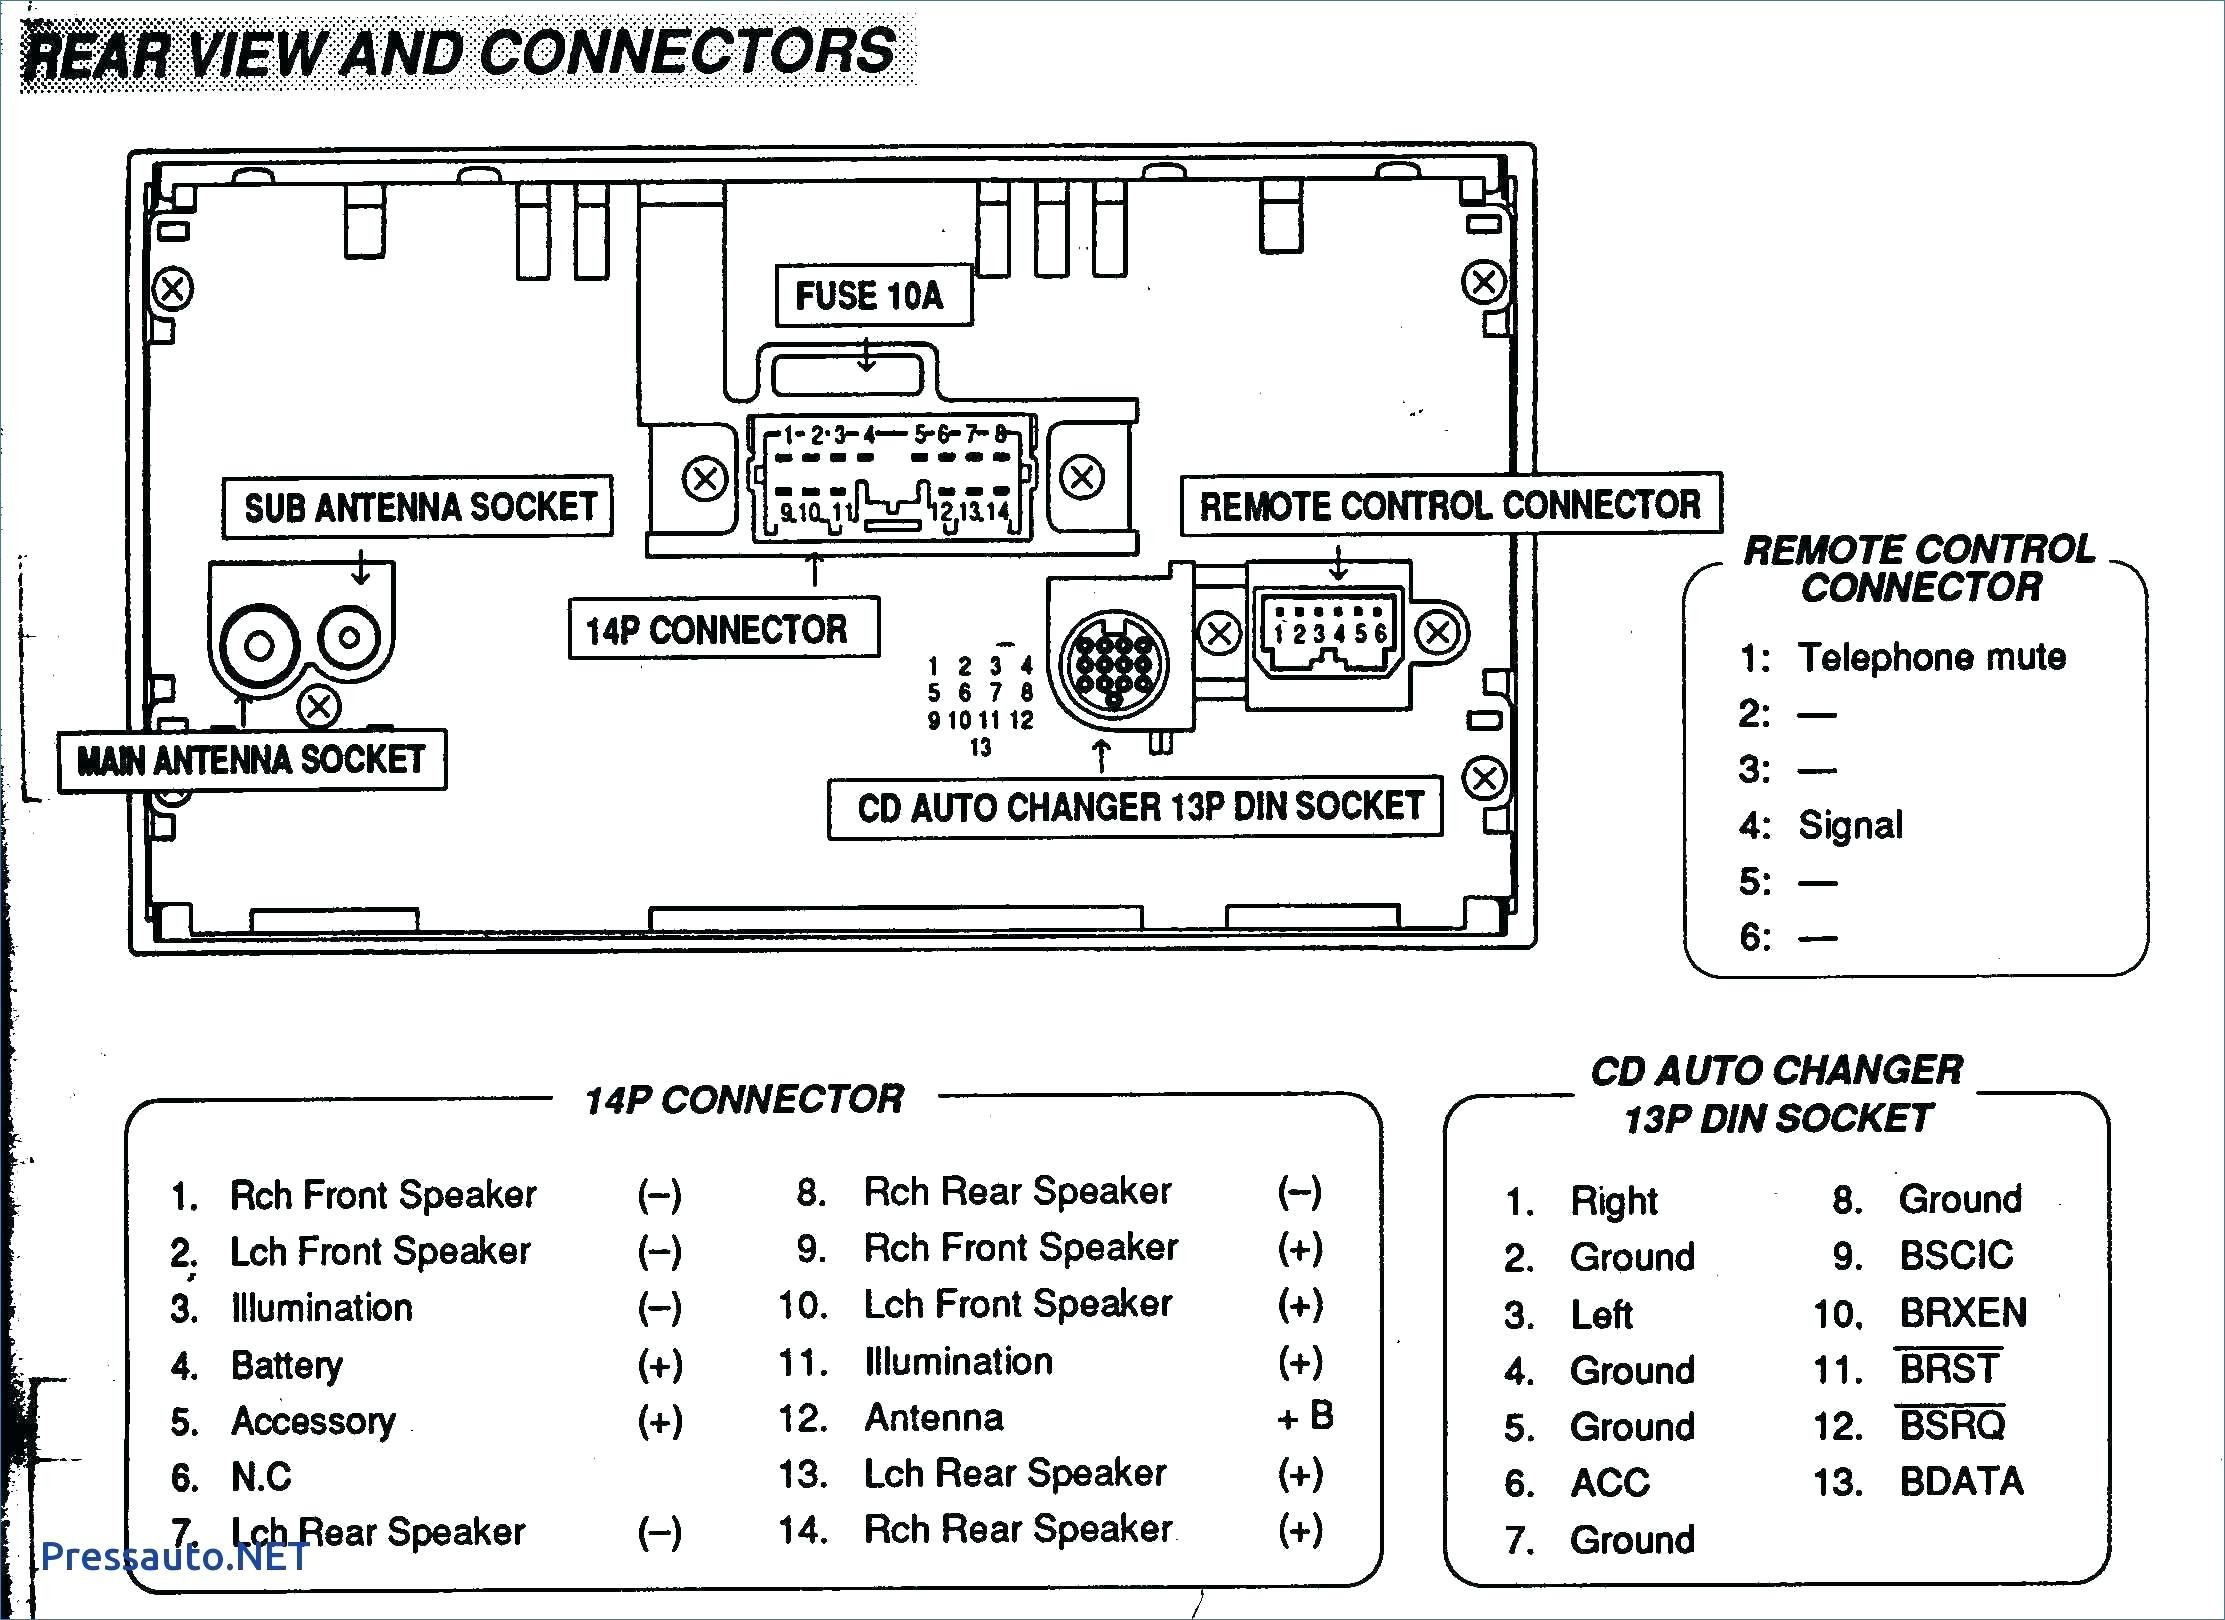 Car Audio System Diagram Volvo V70 Stereo Wiring Of Car Audio System Diagram